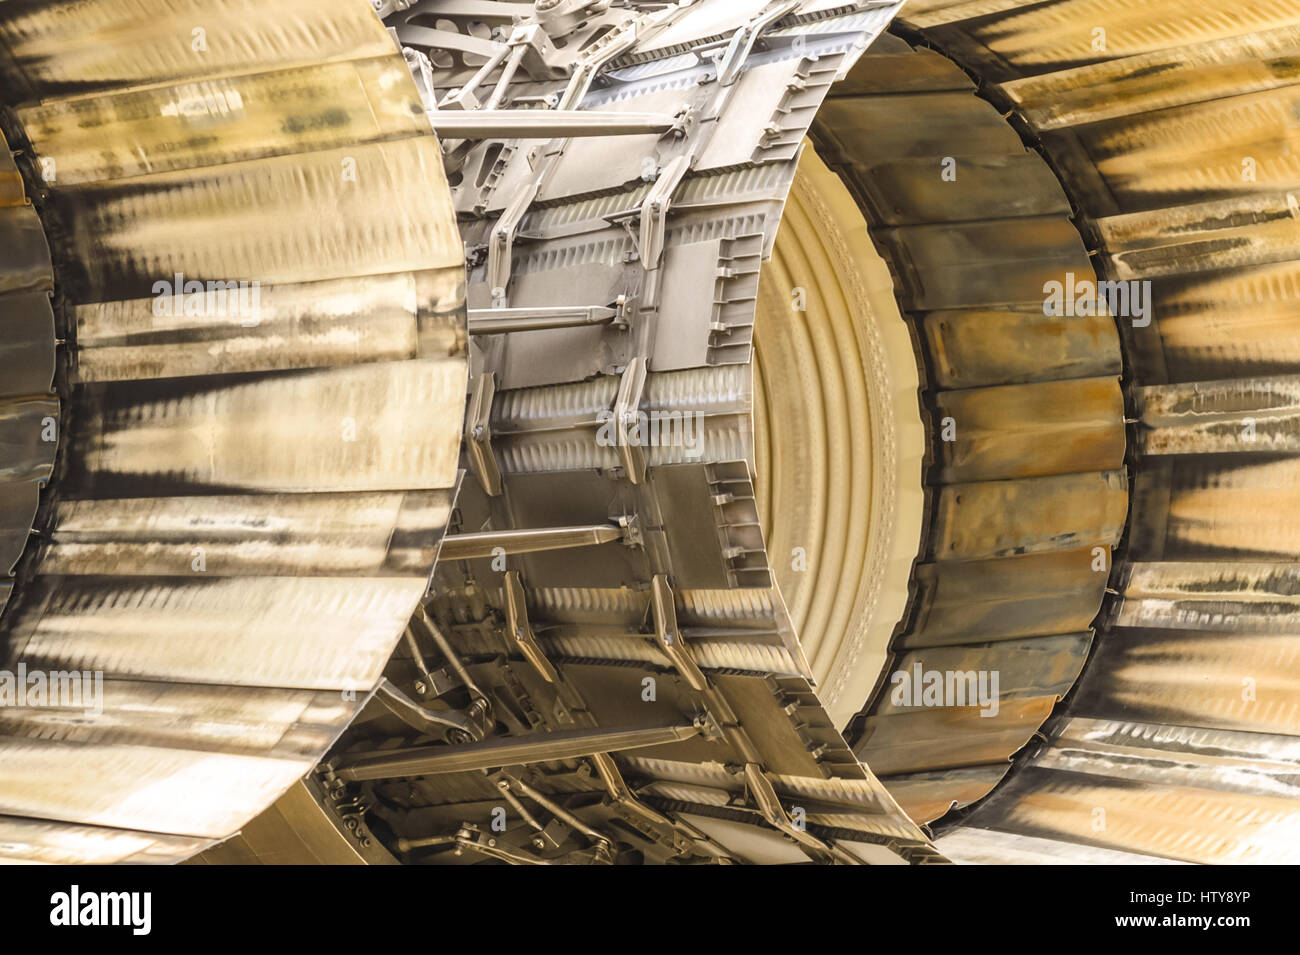 abstract of scorched engine thrust outlets on a military jet - Stock Image